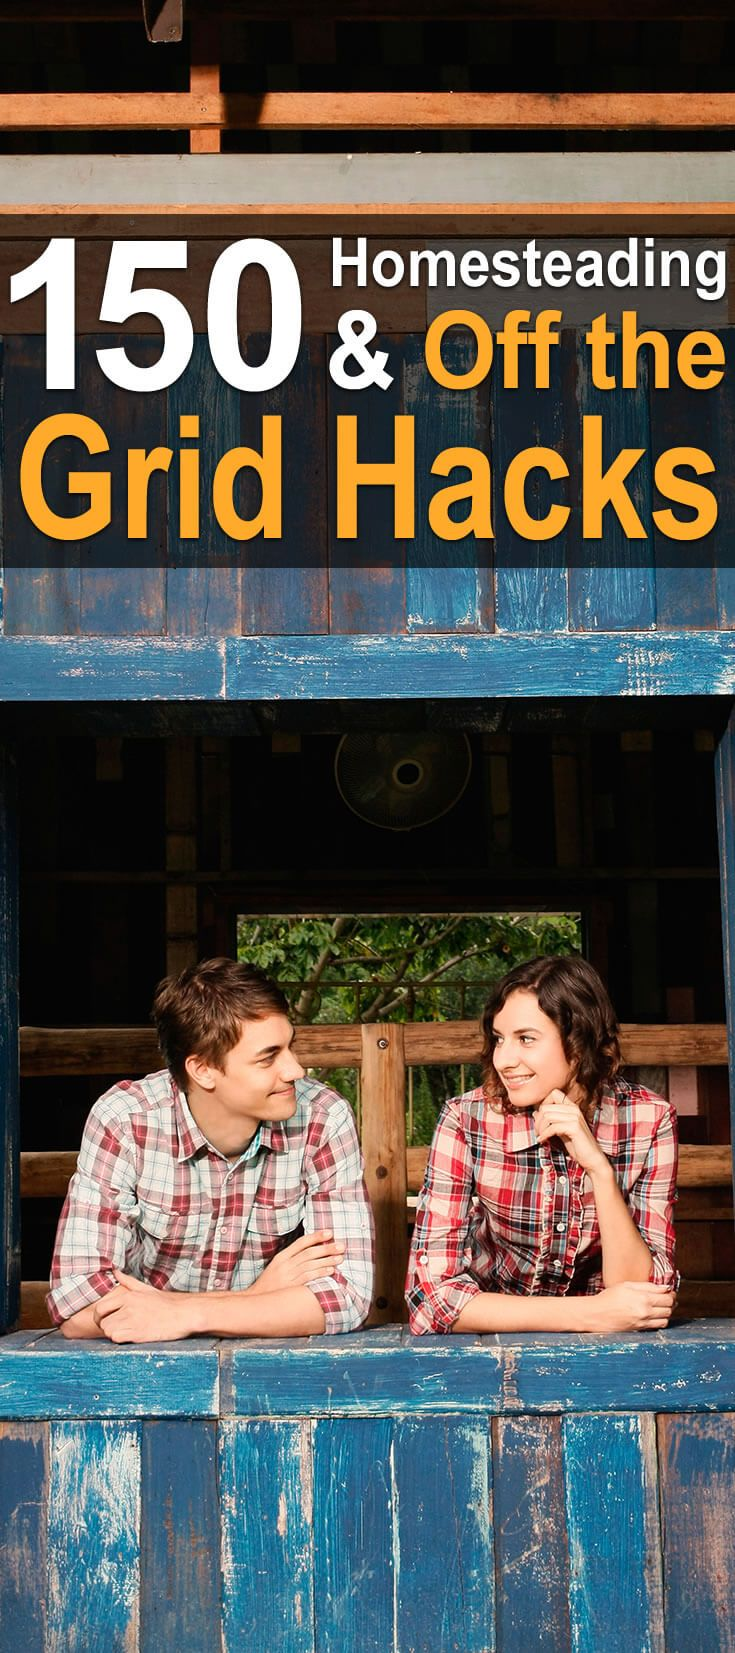 I was reading about homesteading hacks, and I came across two awesome articles. The first is about homesteading, and second is about off grid living.